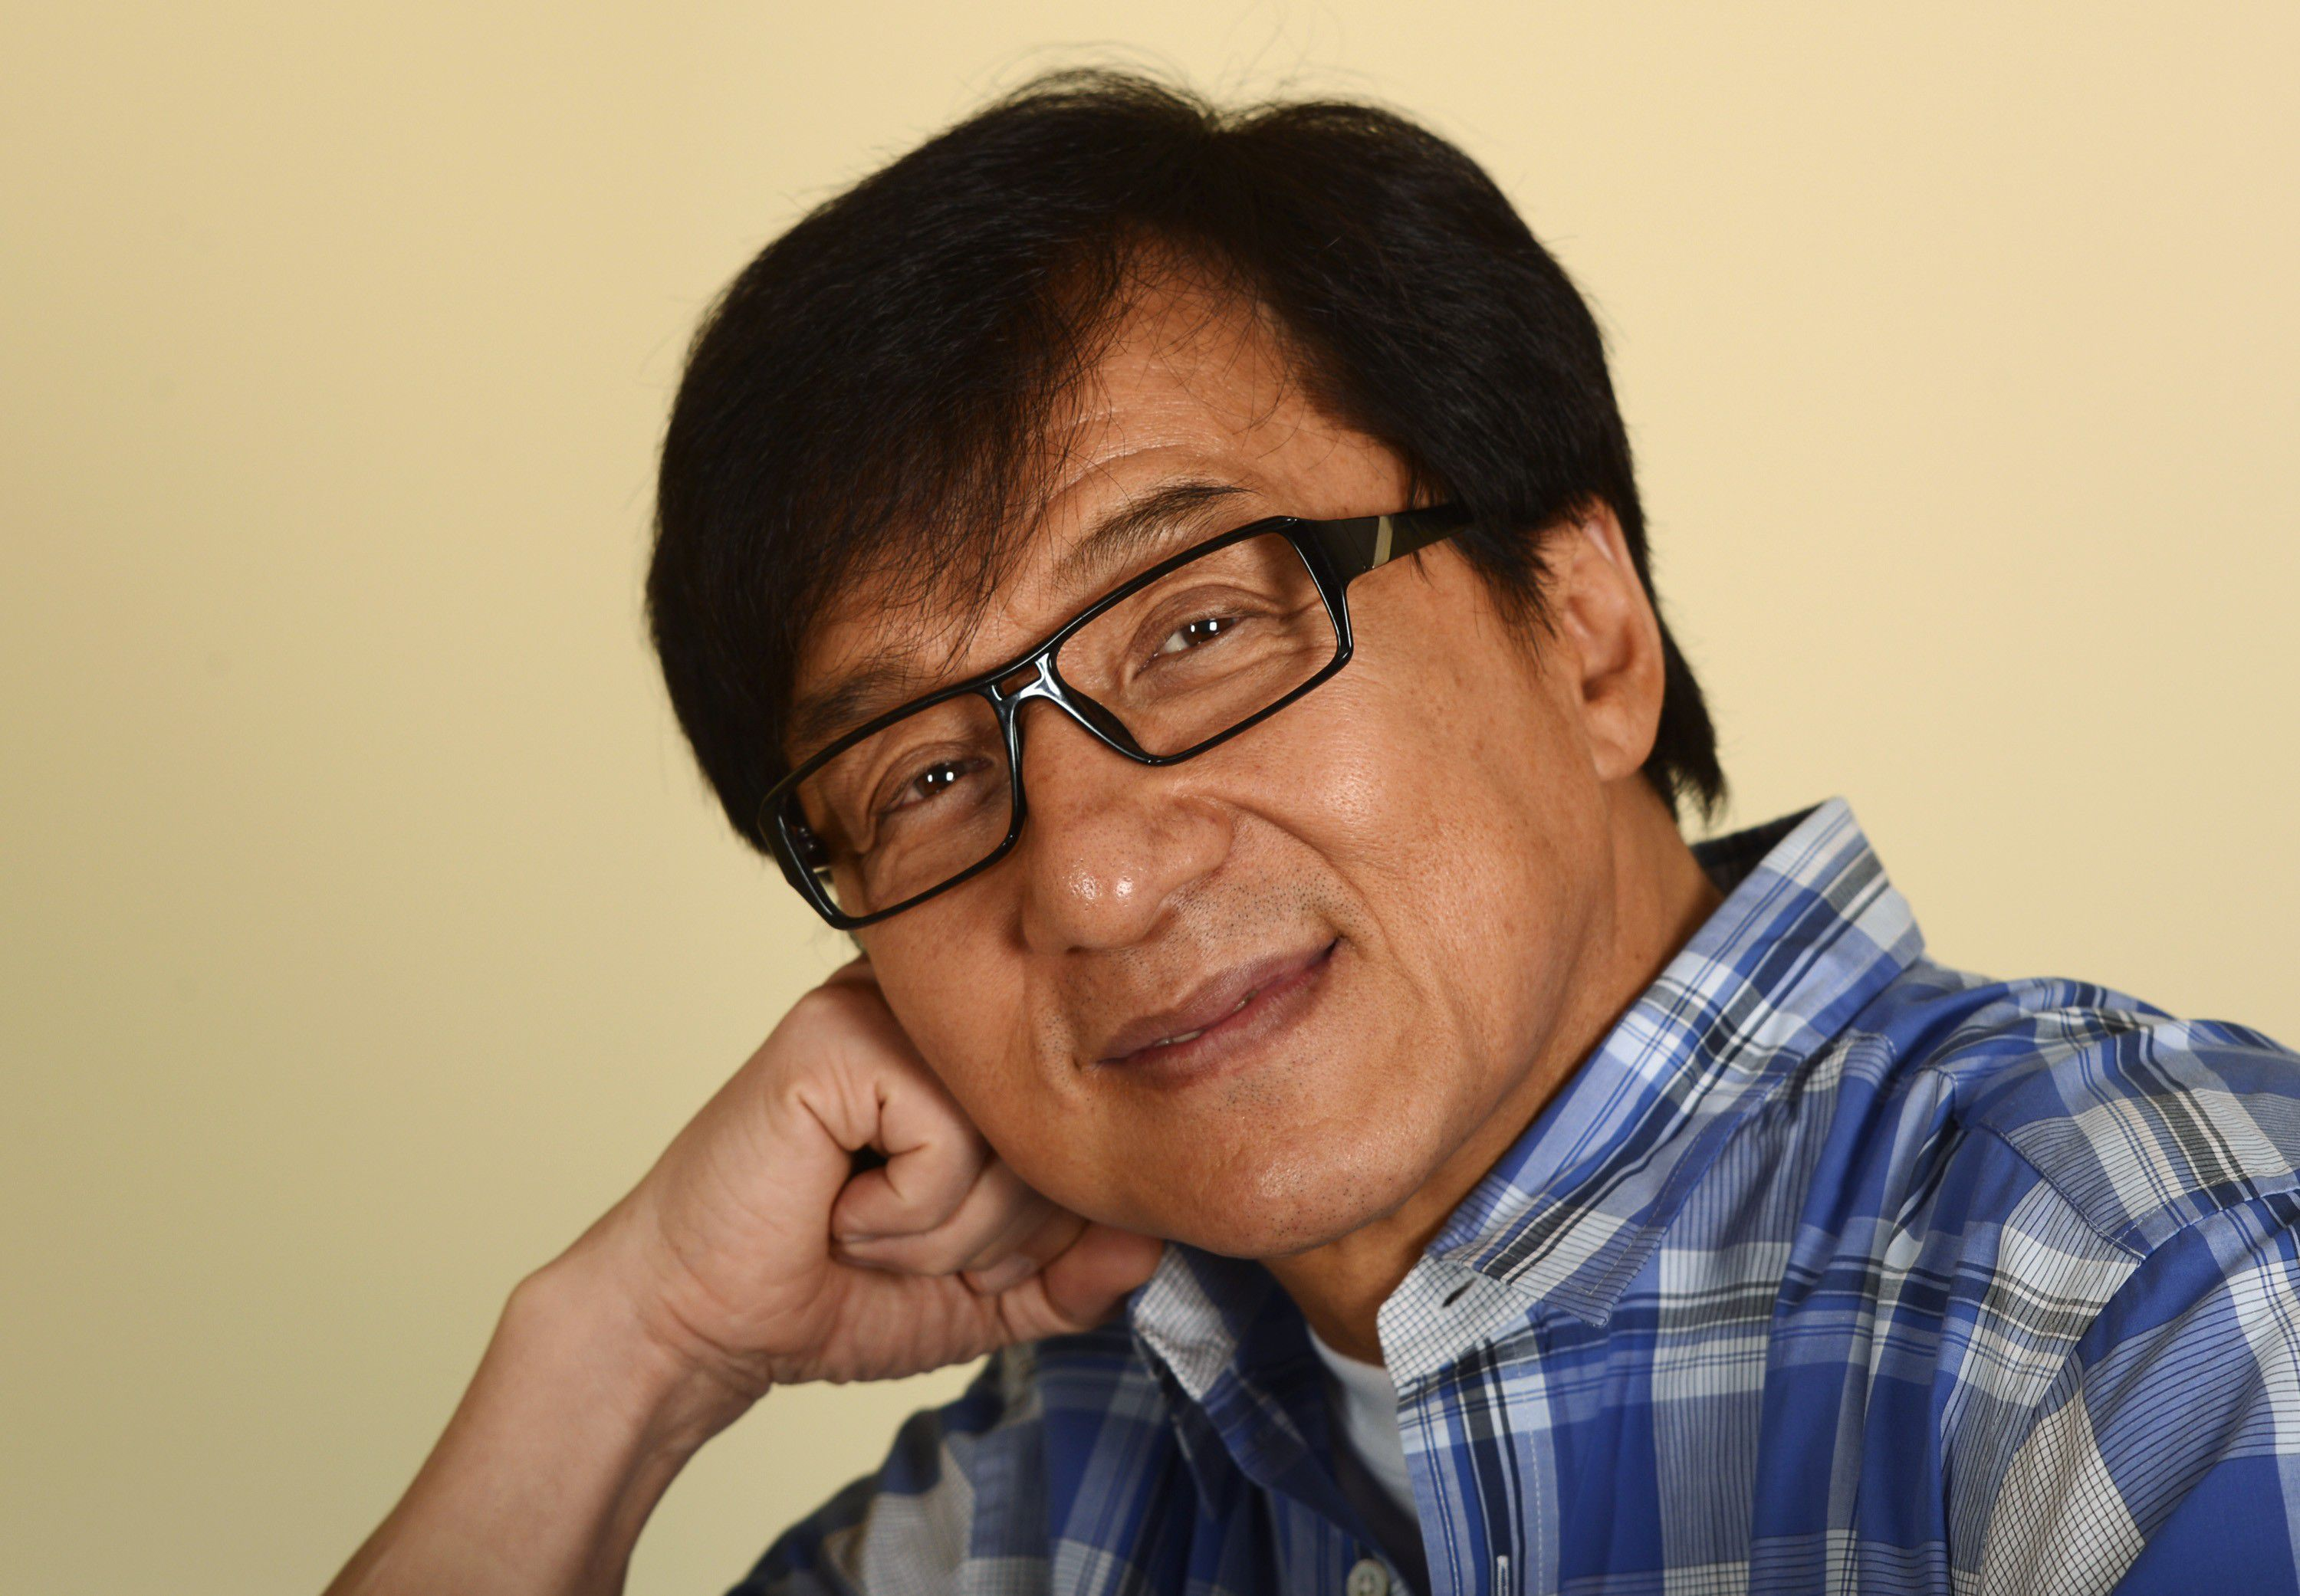 Jackie chan wallpapers backgrounds - Jackie chan wallpaper download ...